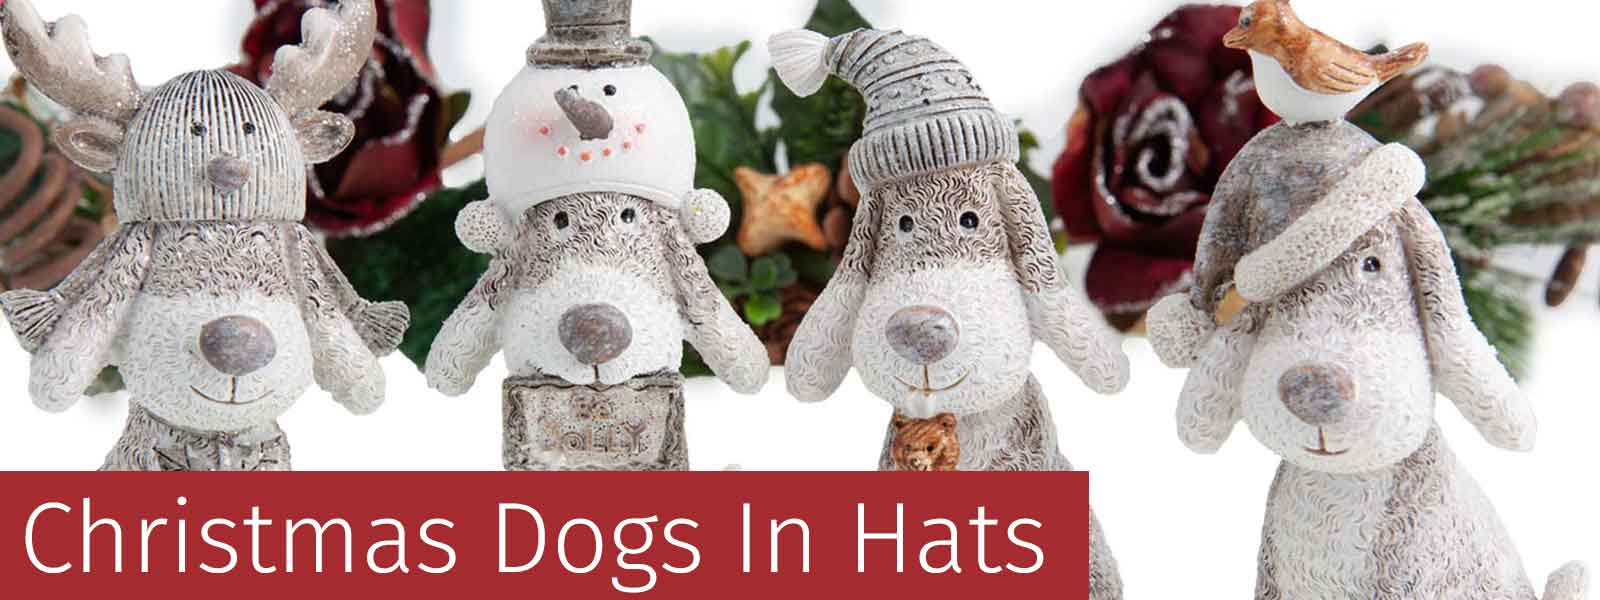 Dogs In Hats Christmas Decorations